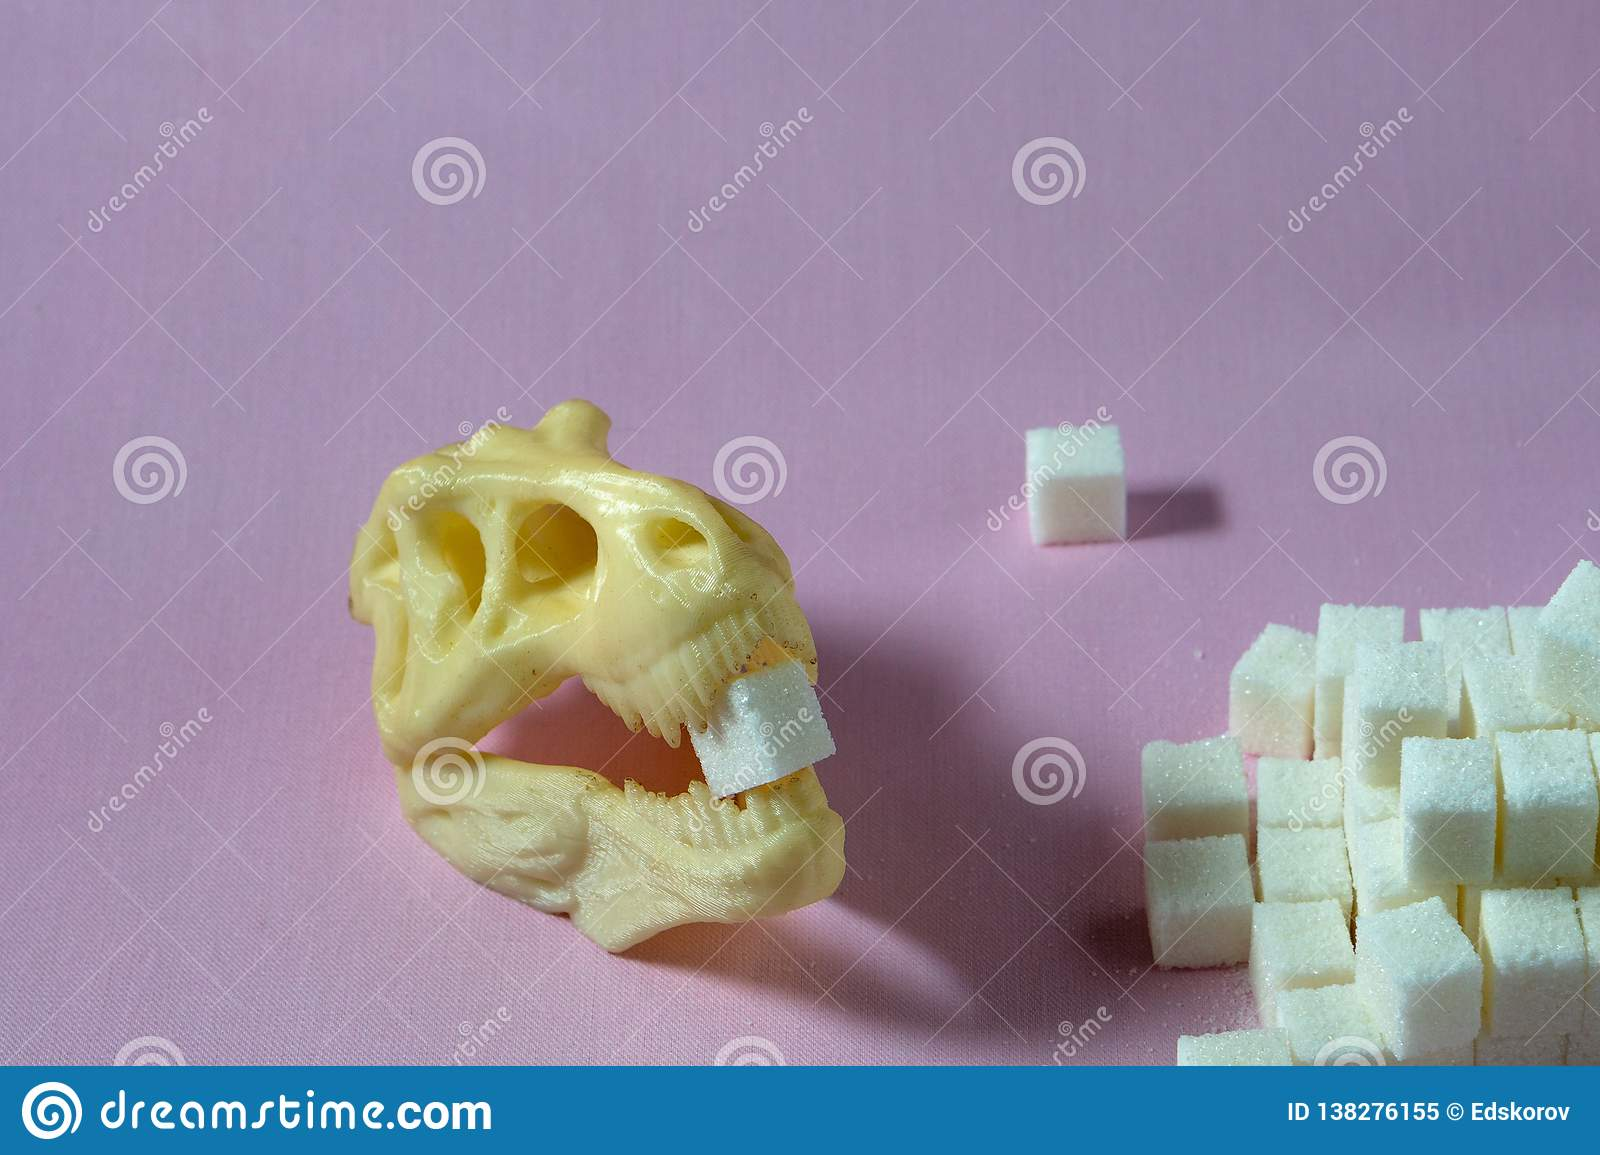 Sugar and dinosaur skull harmful to health